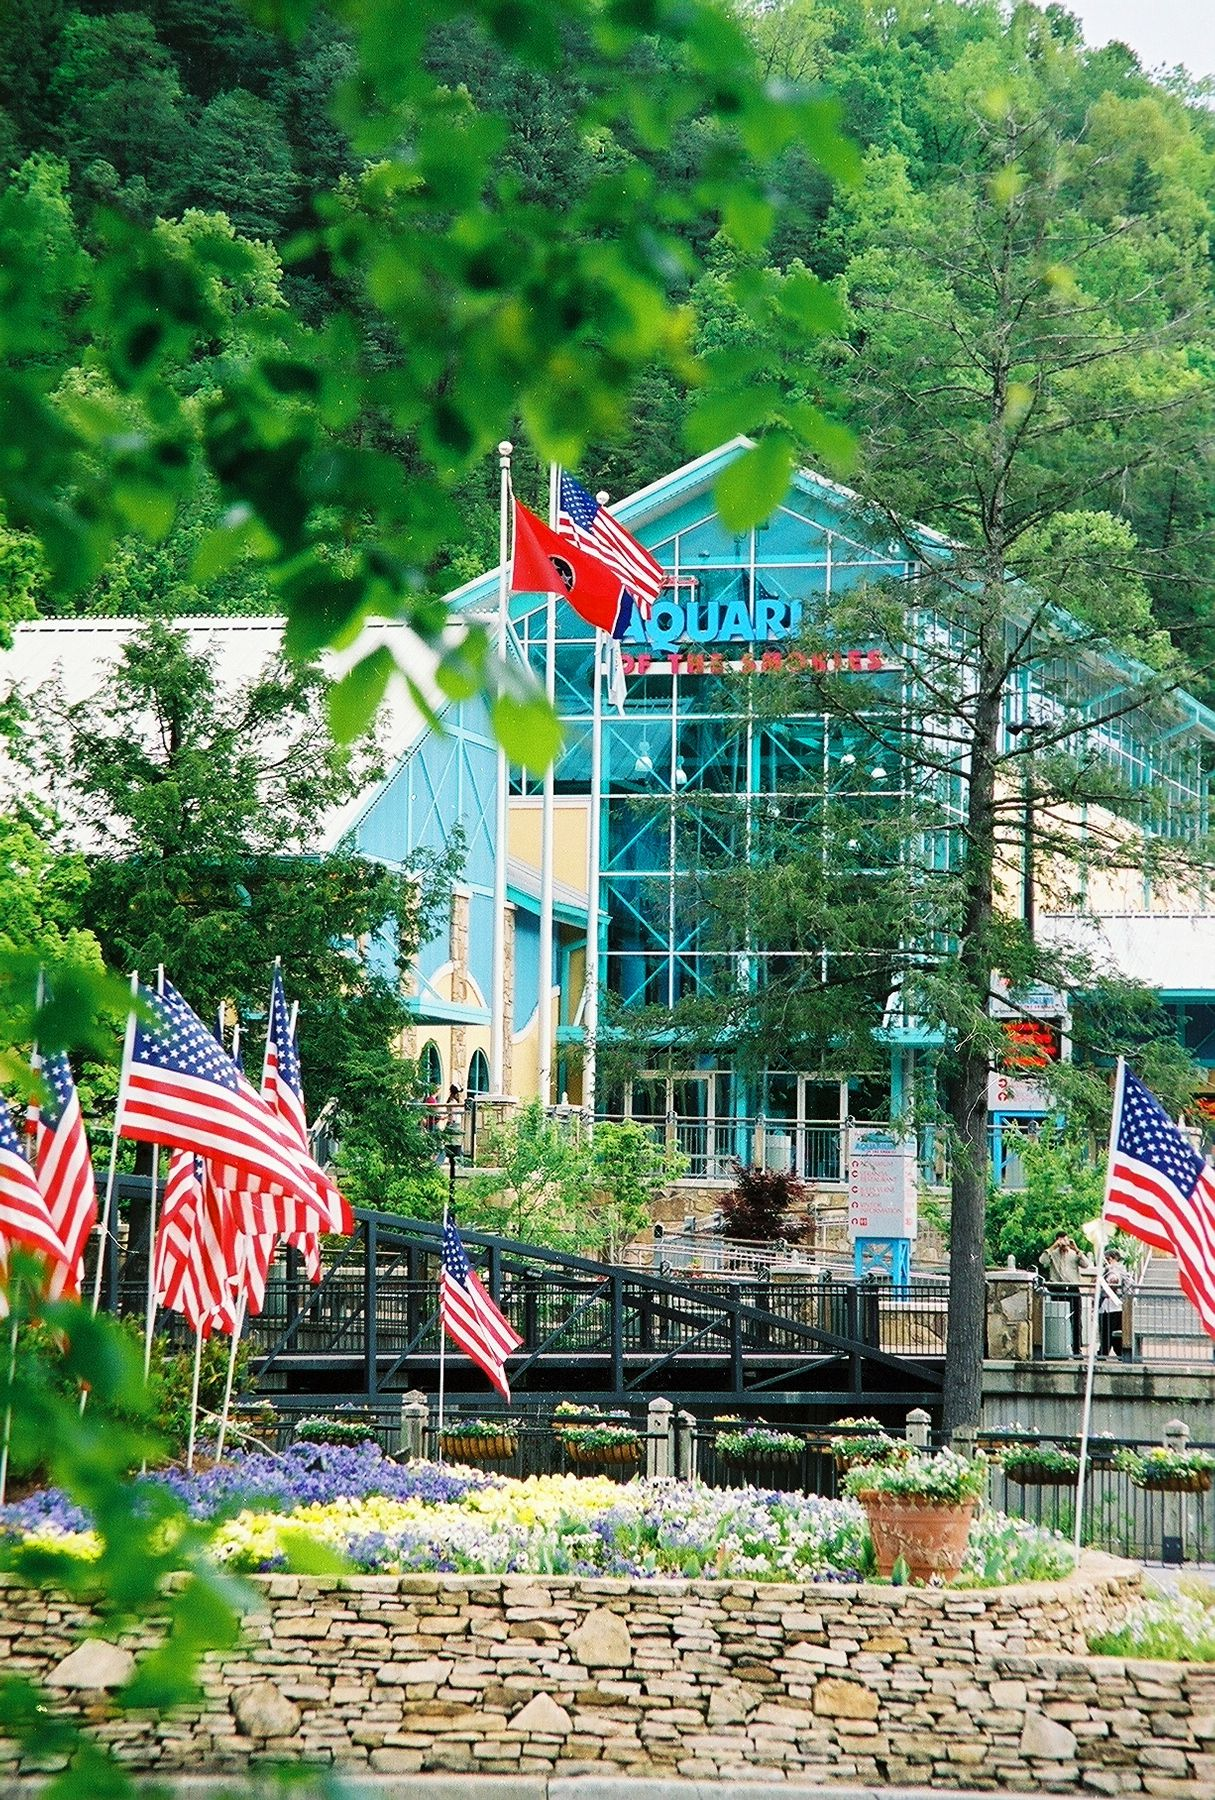 Smoky Mountain Attractions Attractions In Pigeon Forge